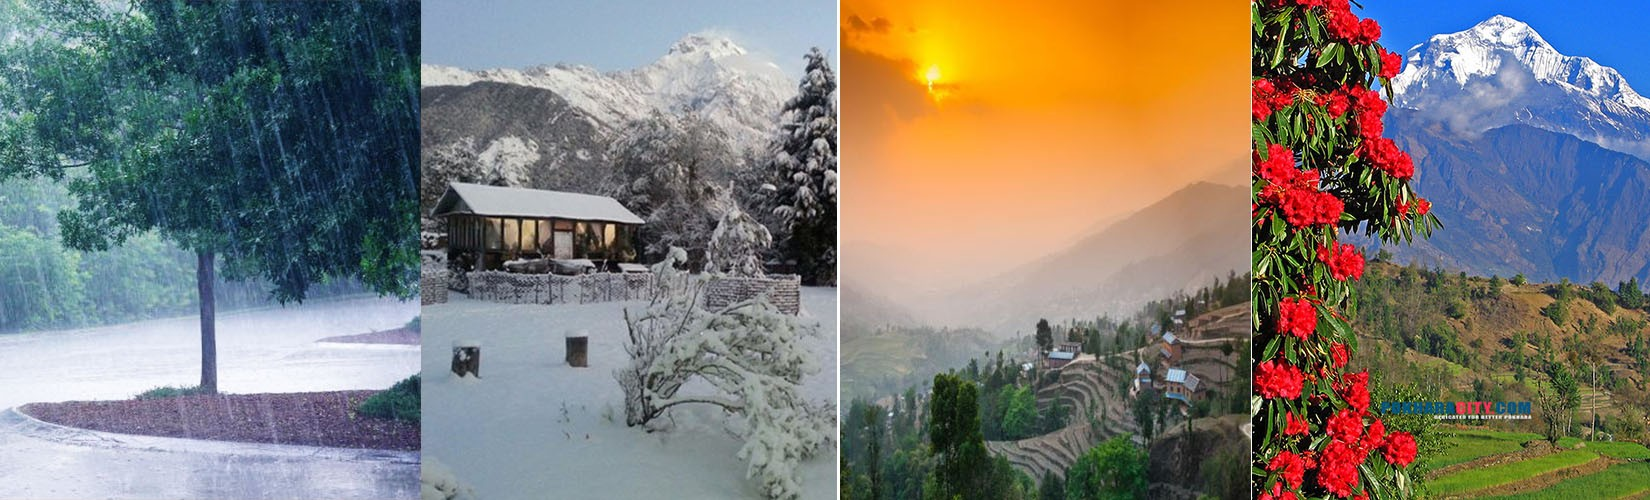 Weather and Climate in Nepal